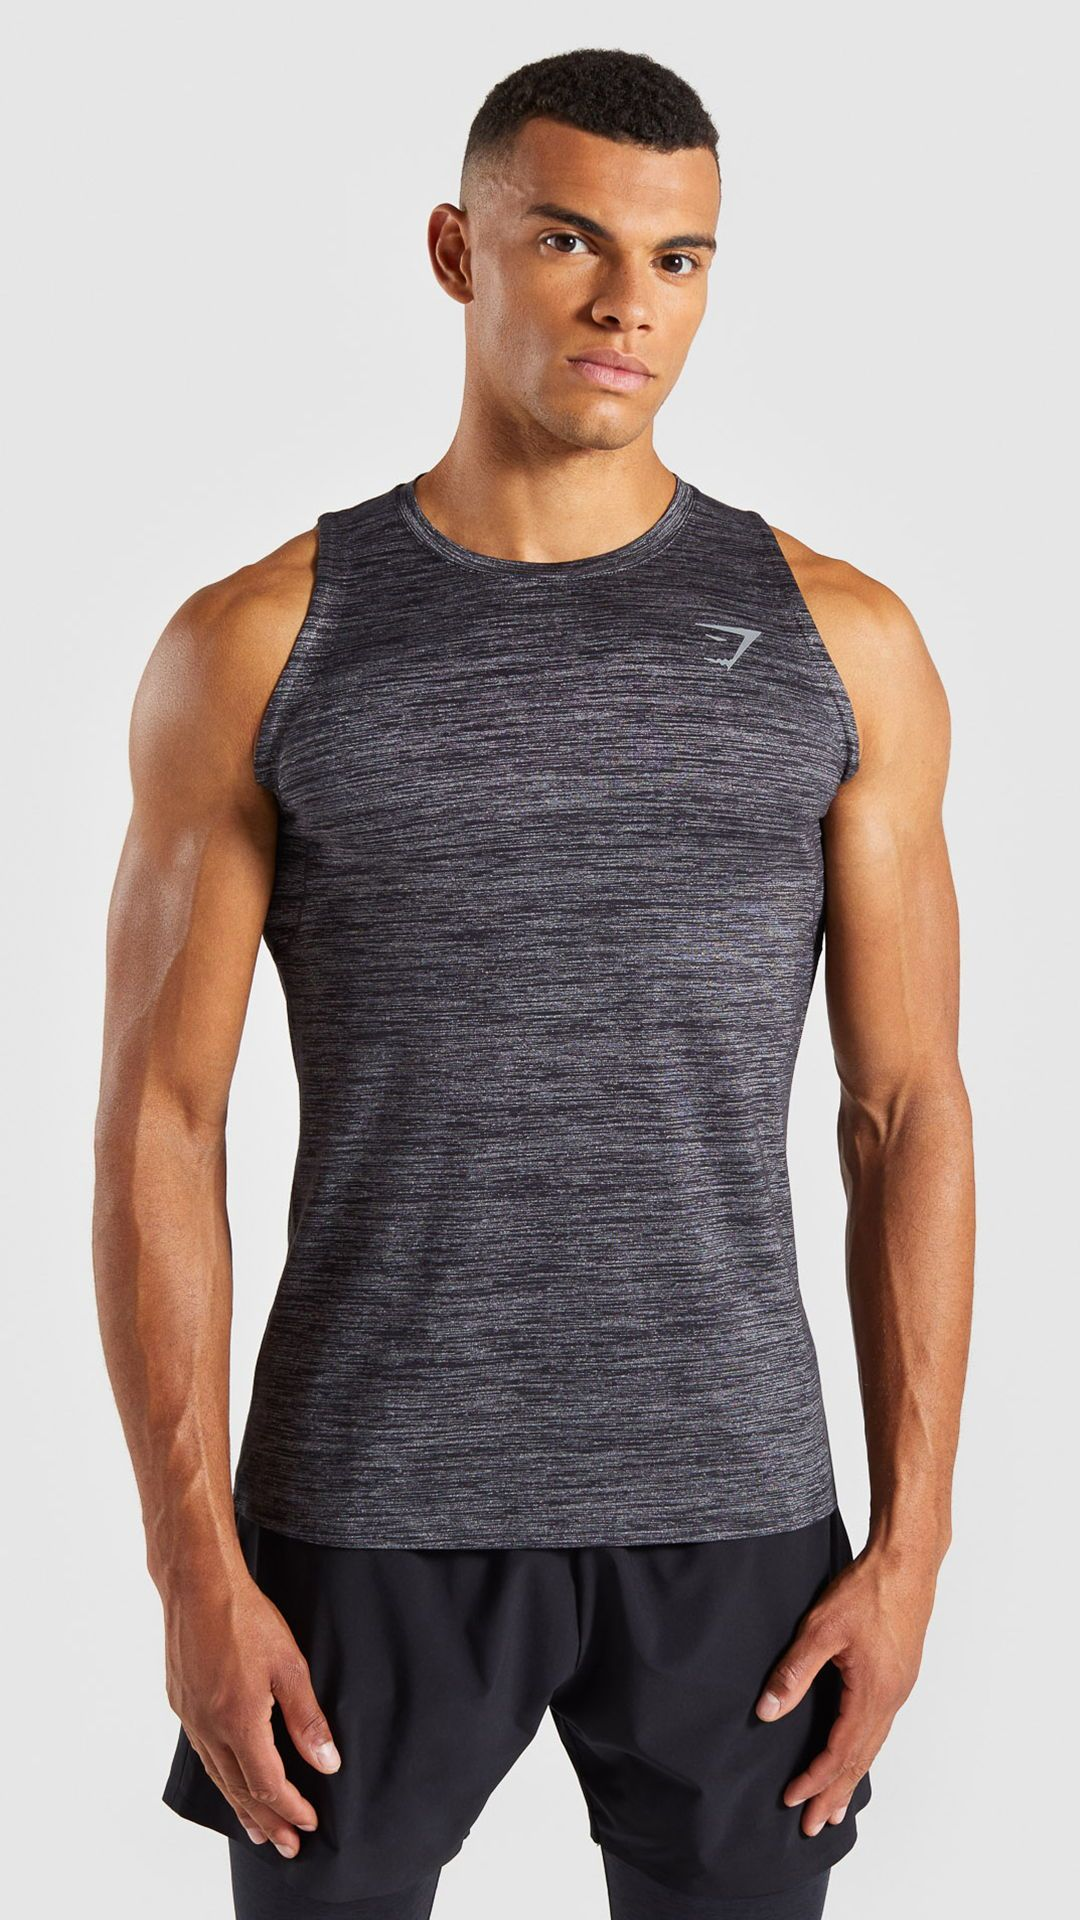 Swerve your style; direct your performance. With muscle